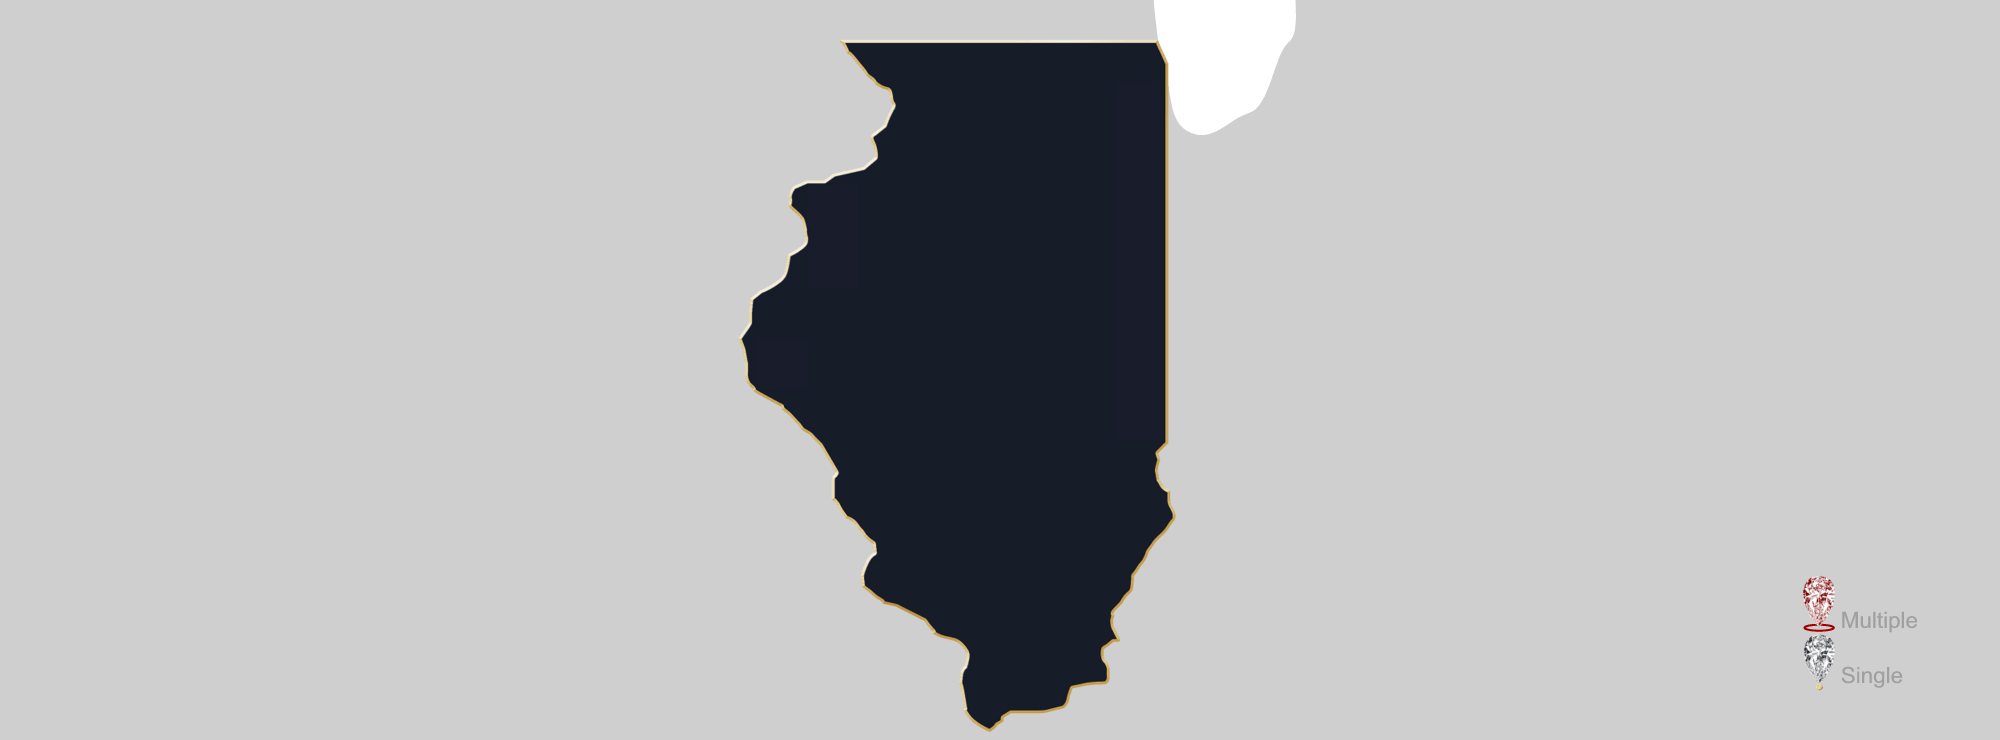 Map showing location of jewelry appraisers in Illinois